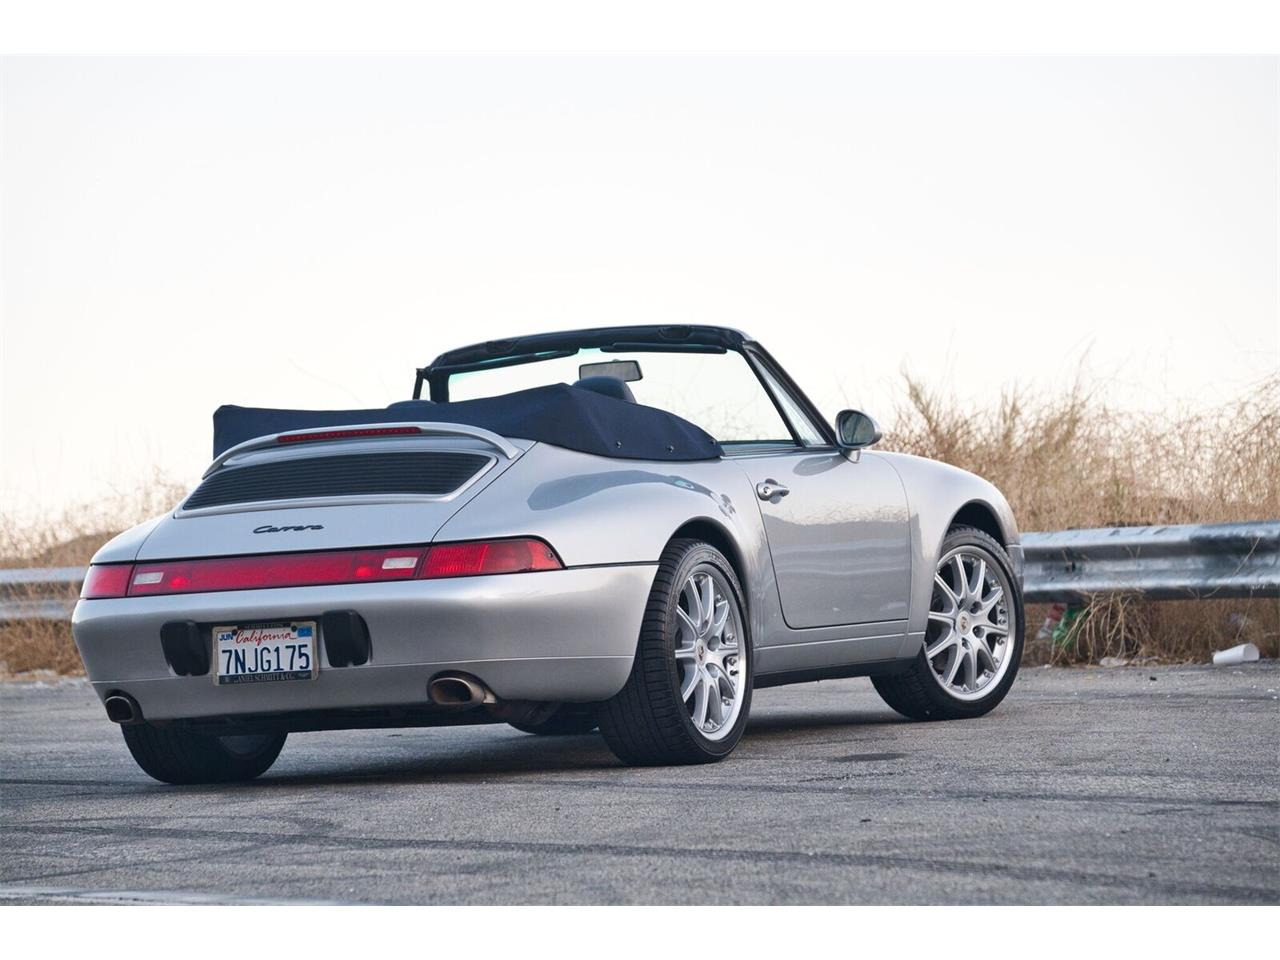 Large Picture of '97 Porsche 911 Carrera located in California Auction Vehicle Offered by Bring A Trailer - R1OR